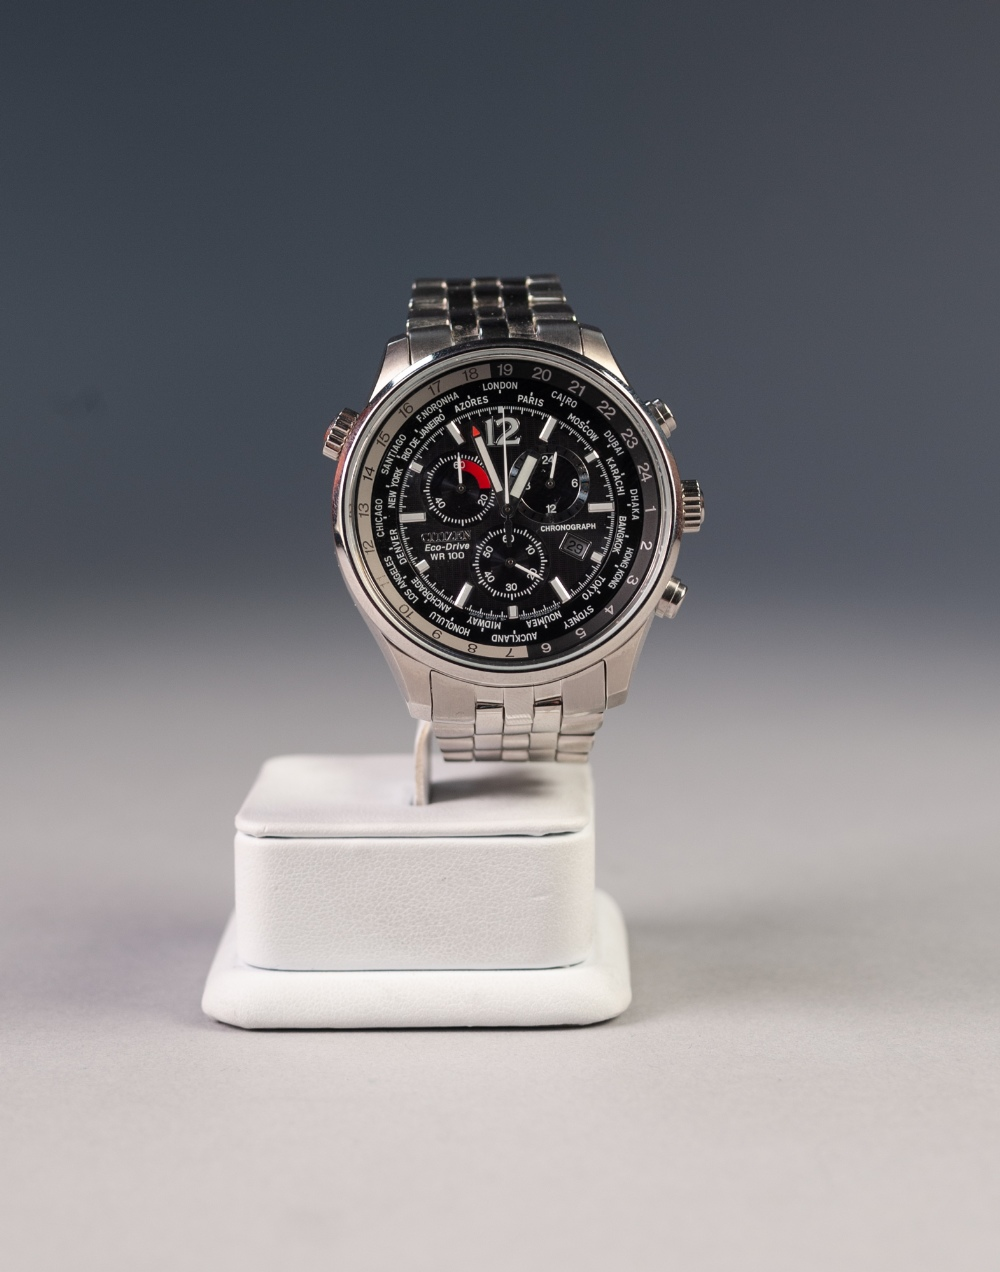 Lot 26 - CITIZEN ECO-DRIVE CHRONOGRAPH, with quartz movement, black dial with three subsidiary dials and date